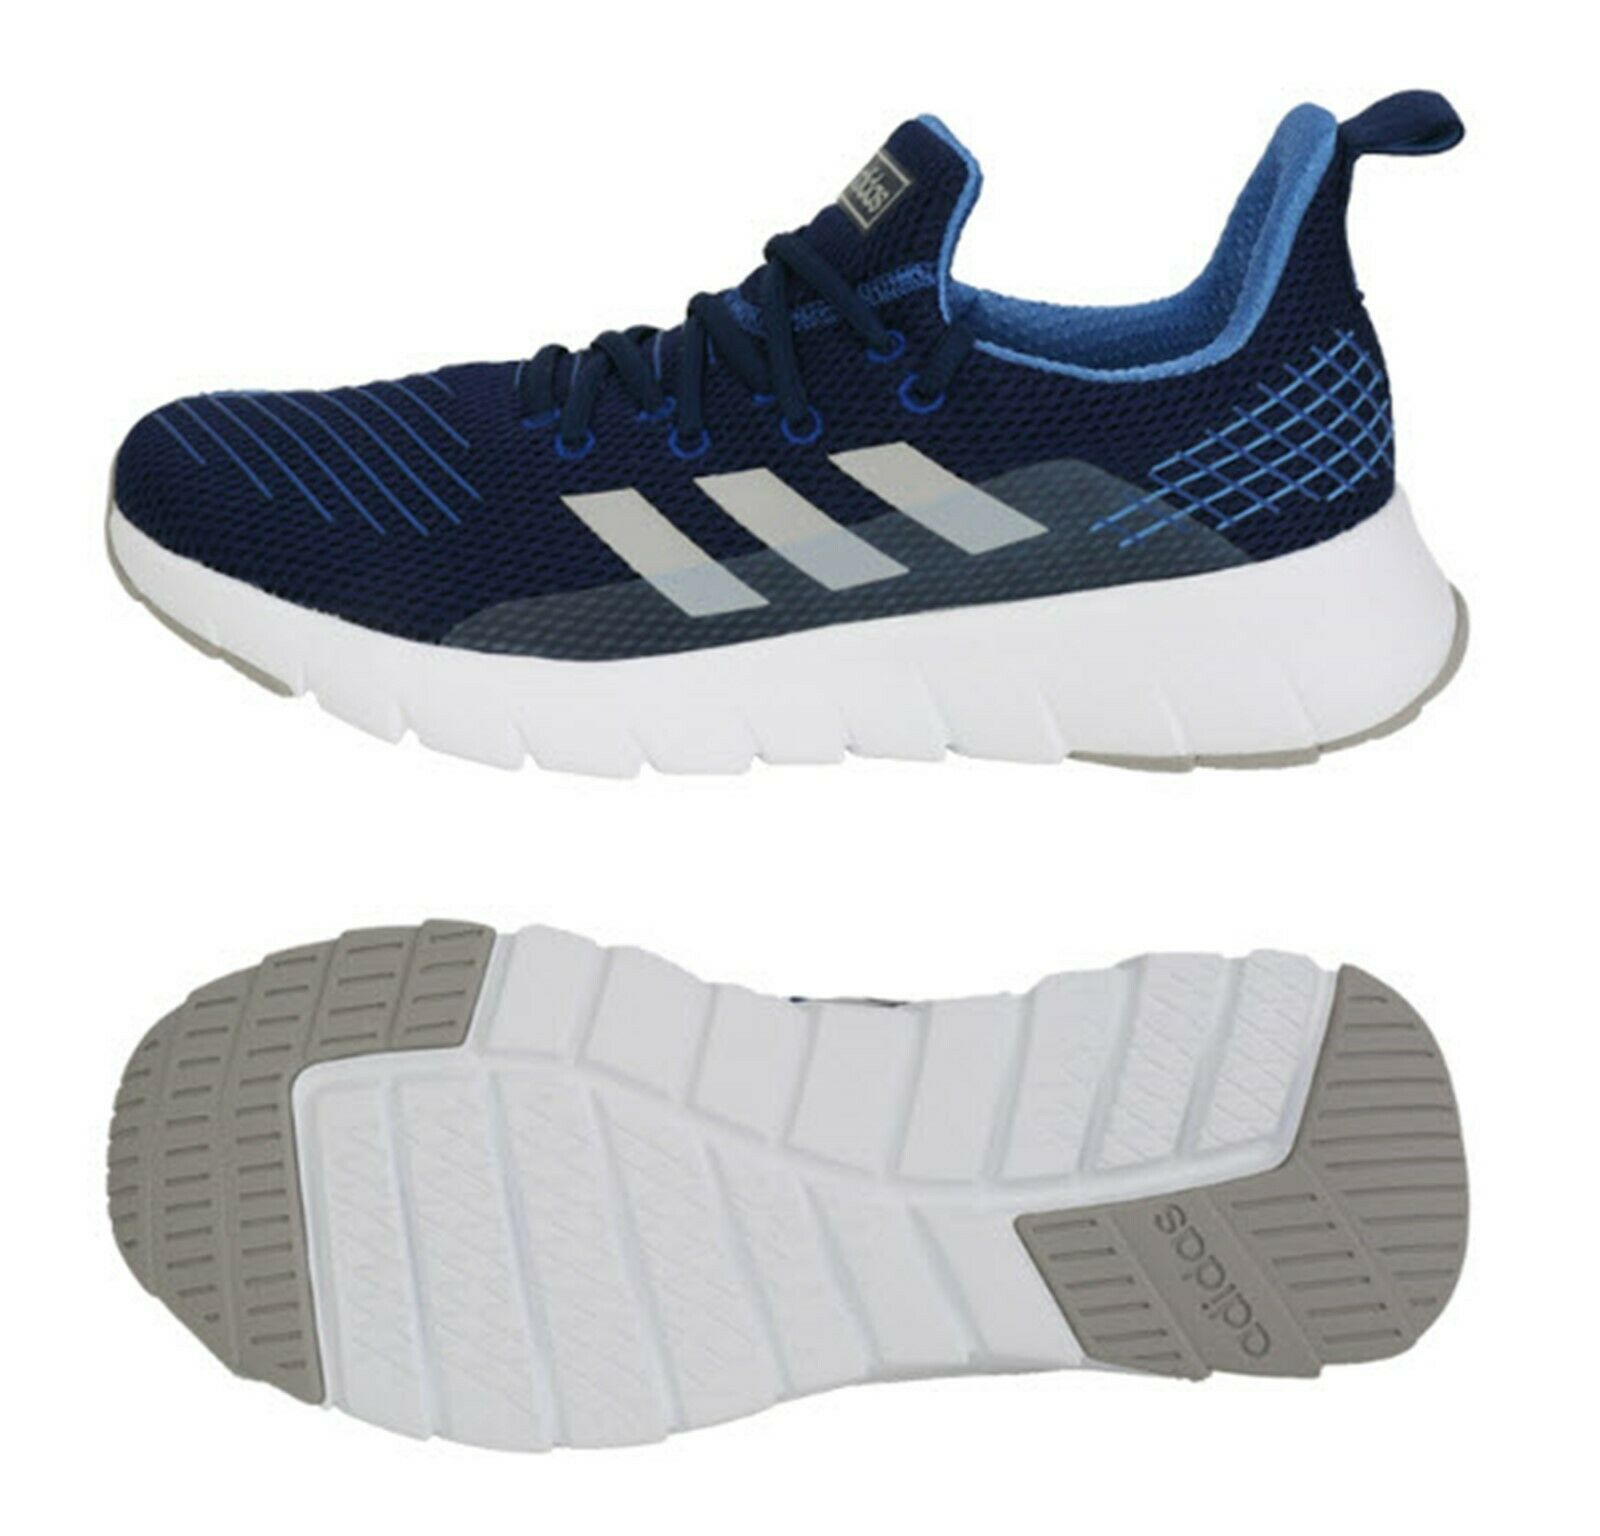 Adidas Men Asweego shoes Running Navy bluee White Sneakers Boot GYM shoes F35444